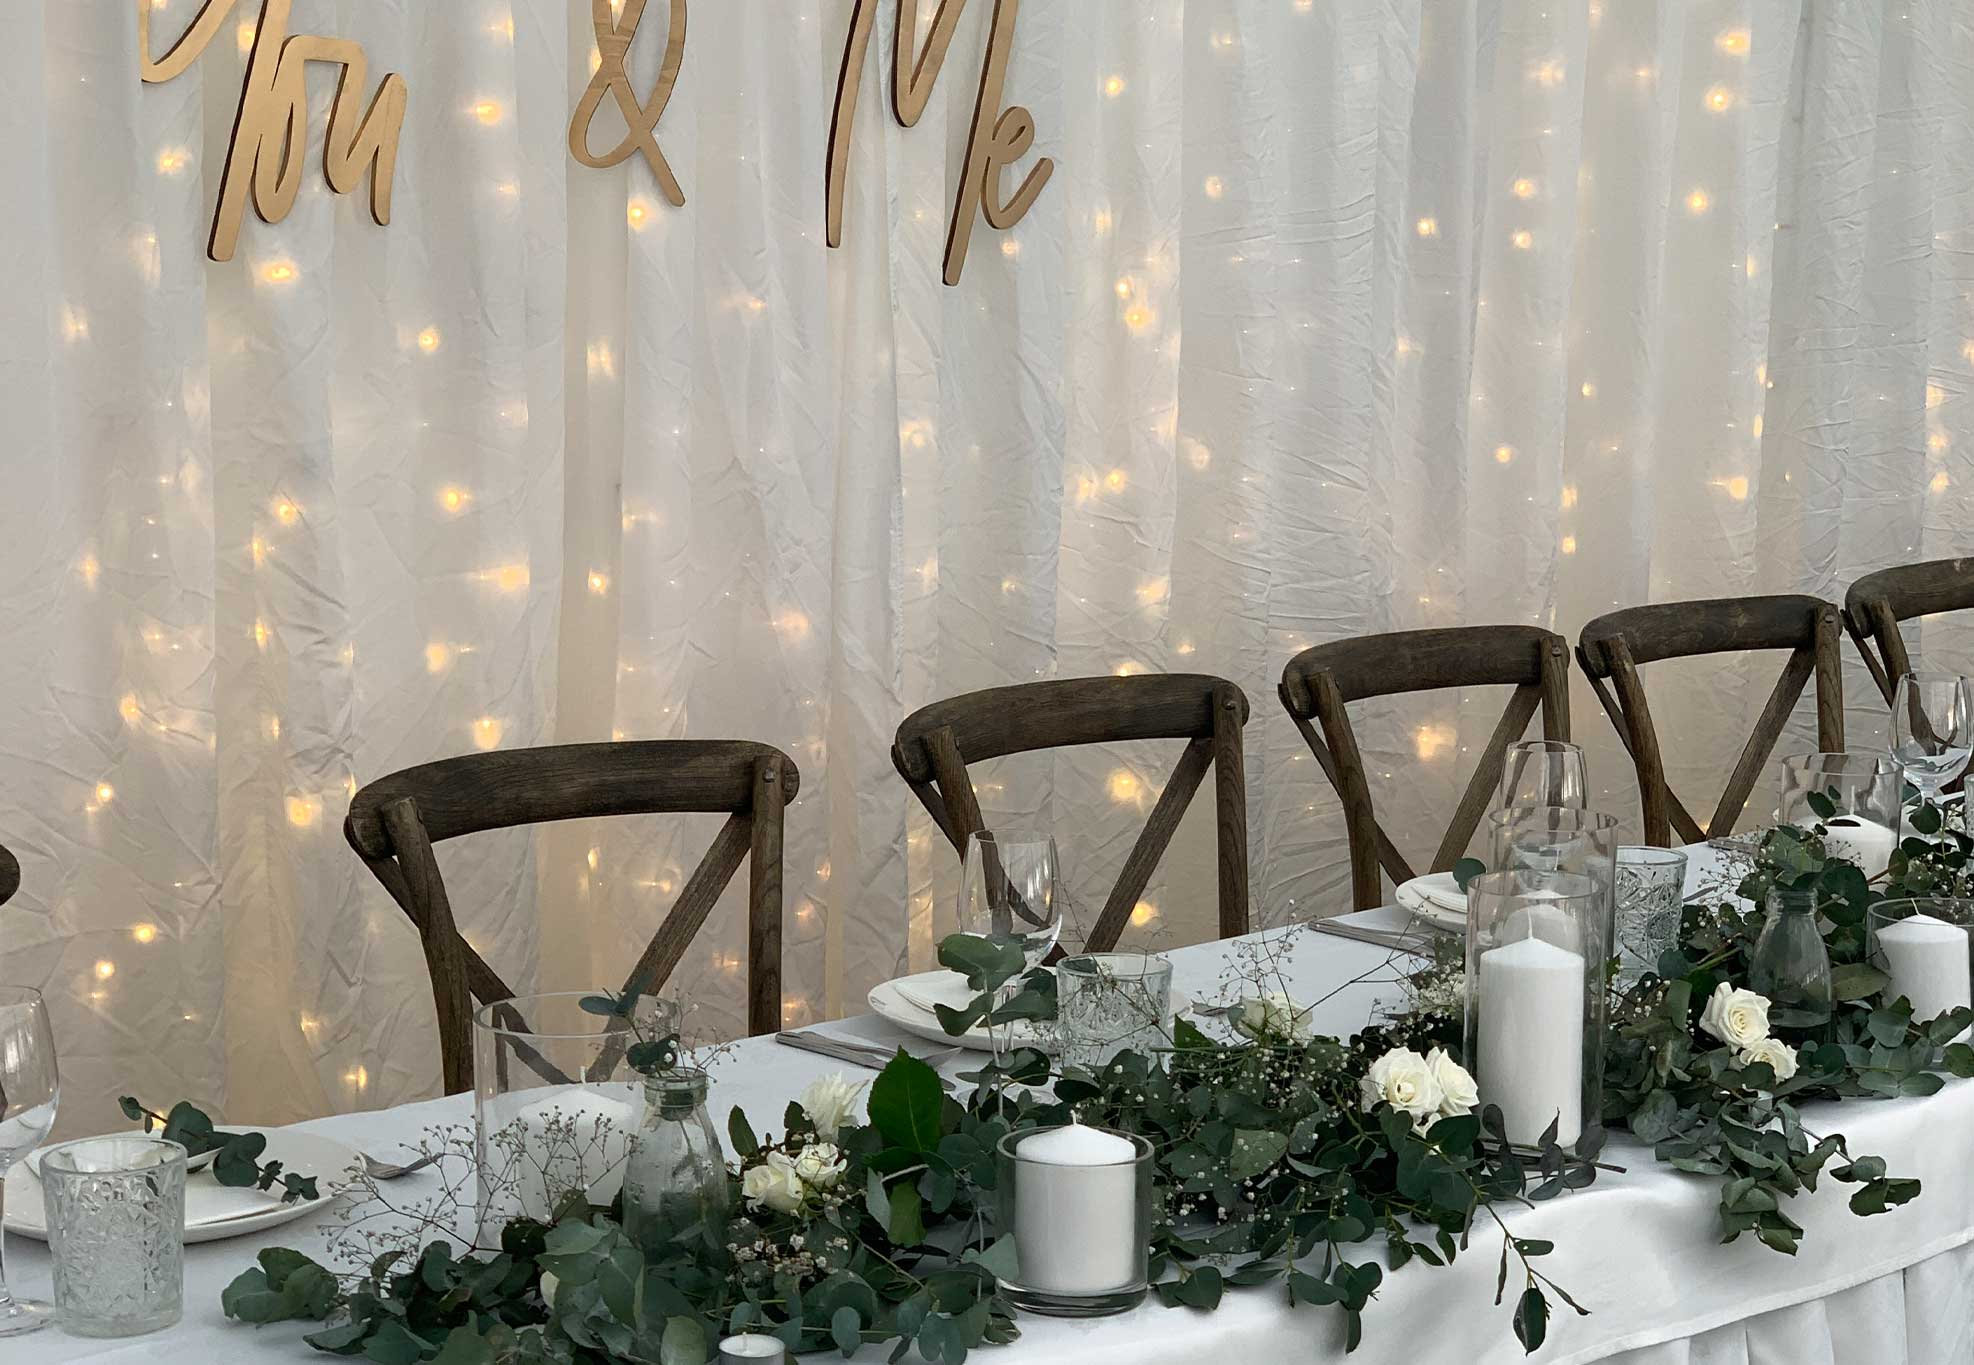 silk-estate-marquee-weddings-and-events-styling-and-hire-lighting-fairy-lights-4